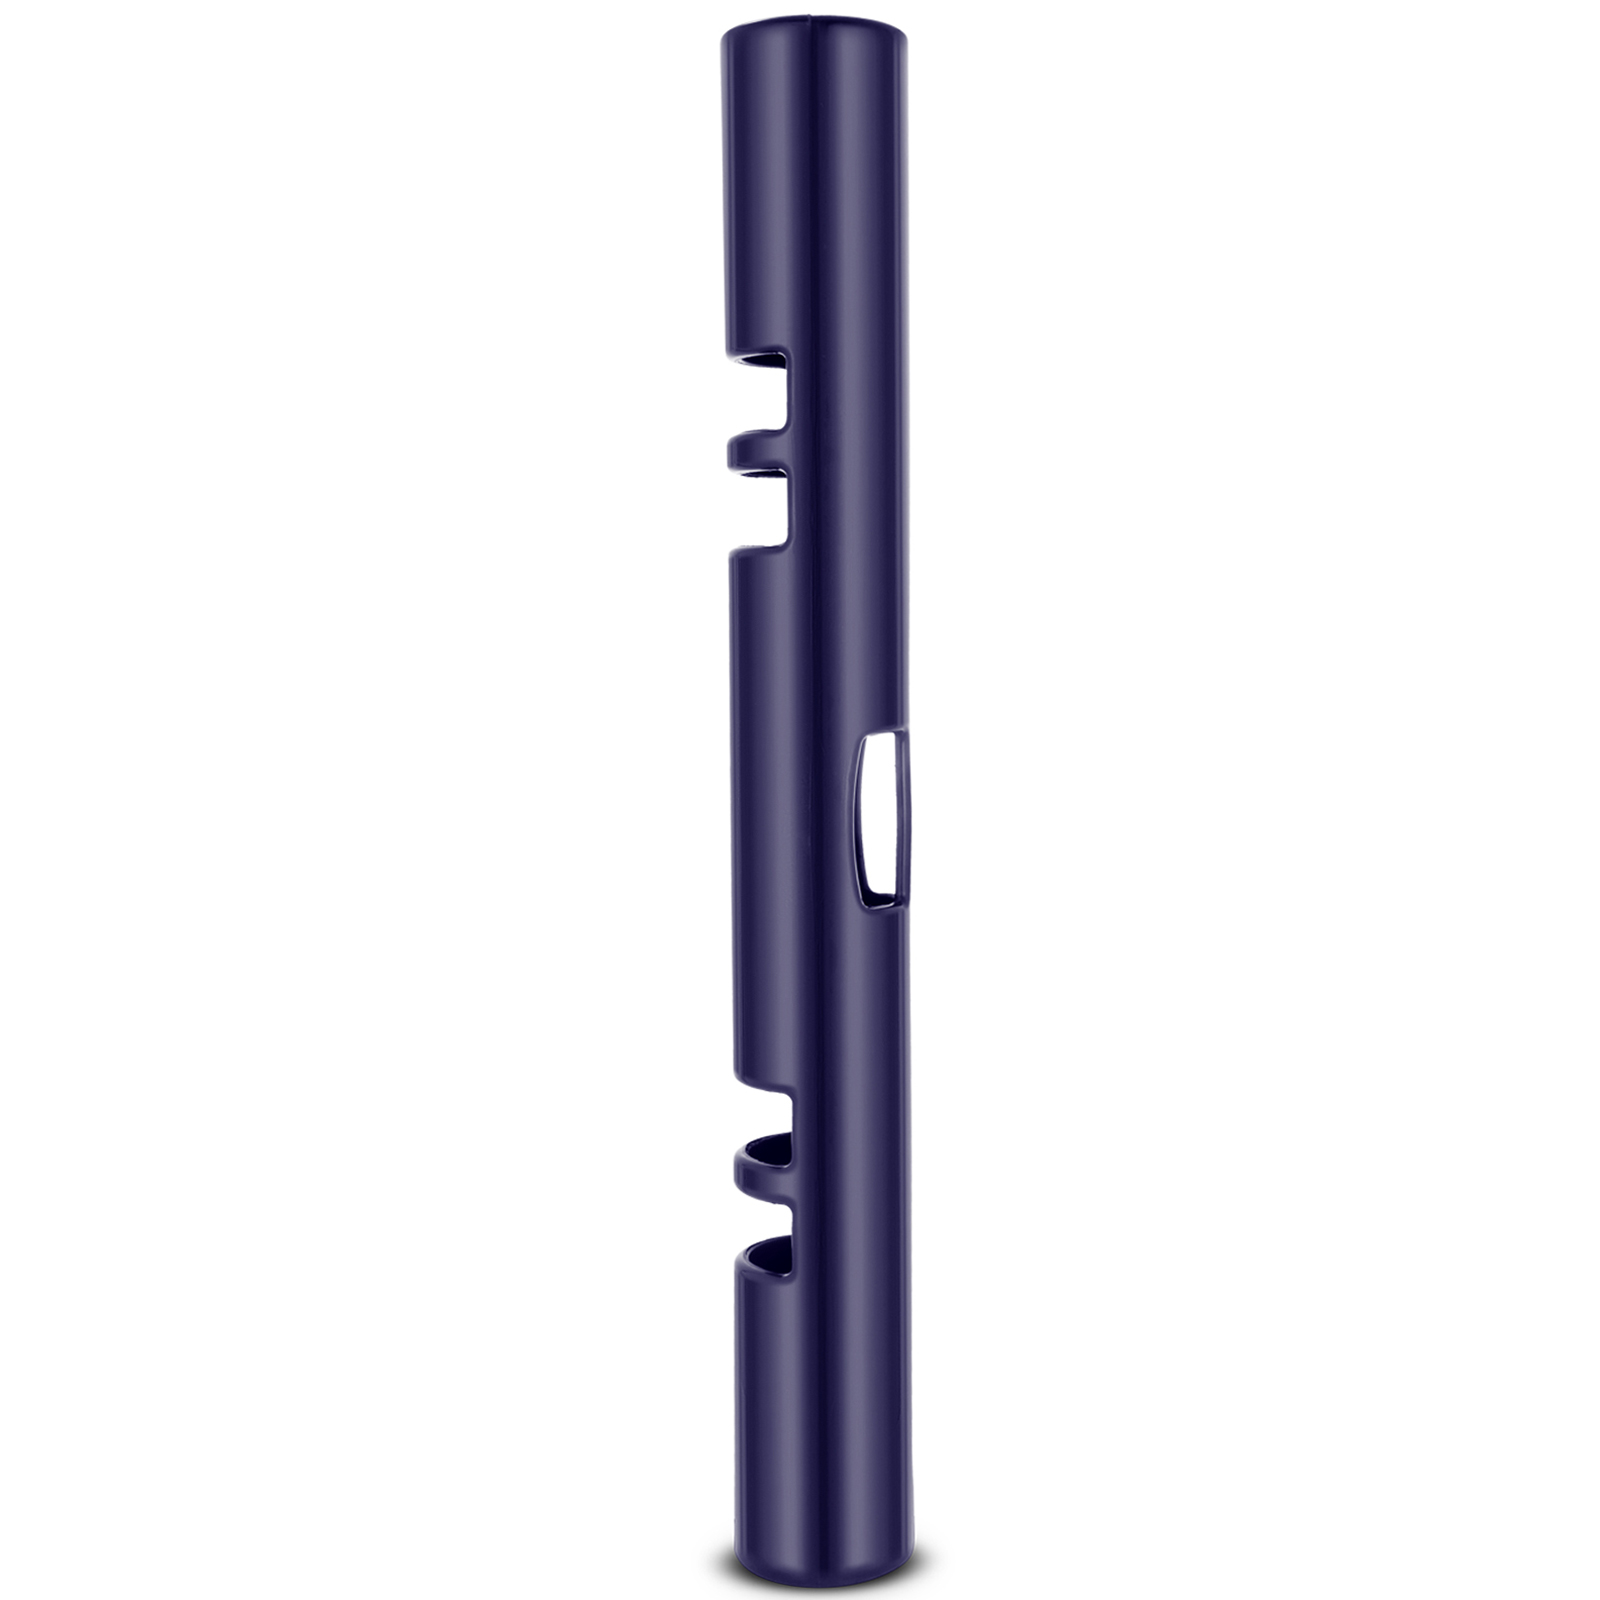 Vipr-Fitpro-Fitness-Tube-Loaded-Movement-Training-weightlifting-4-6-8-10-12-Kg thumbnail 131